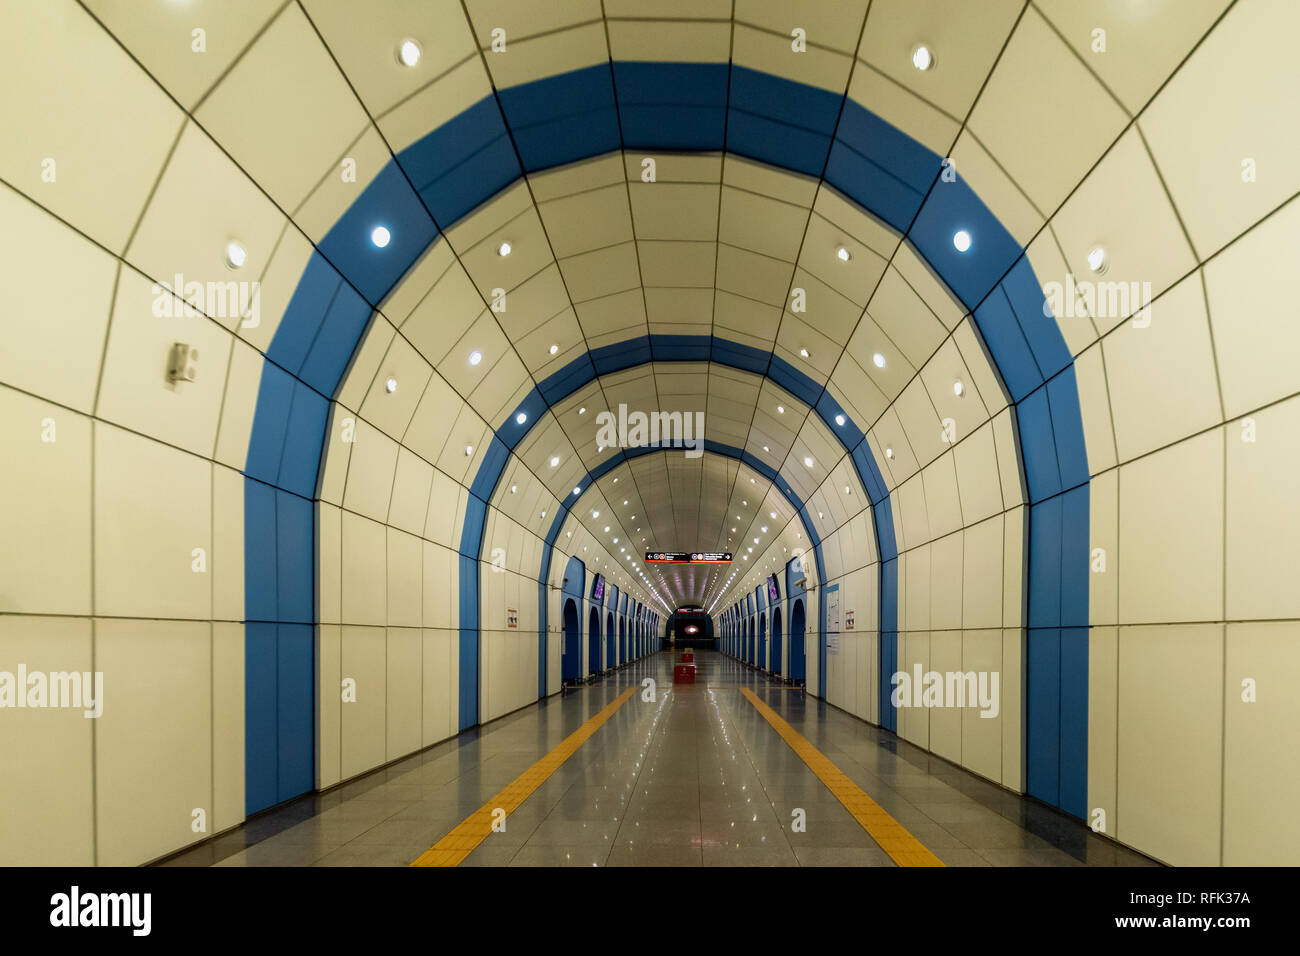 Vanishing point 2, Baikonur Metro Station, Alamty, Kazakhstan - Stock Image